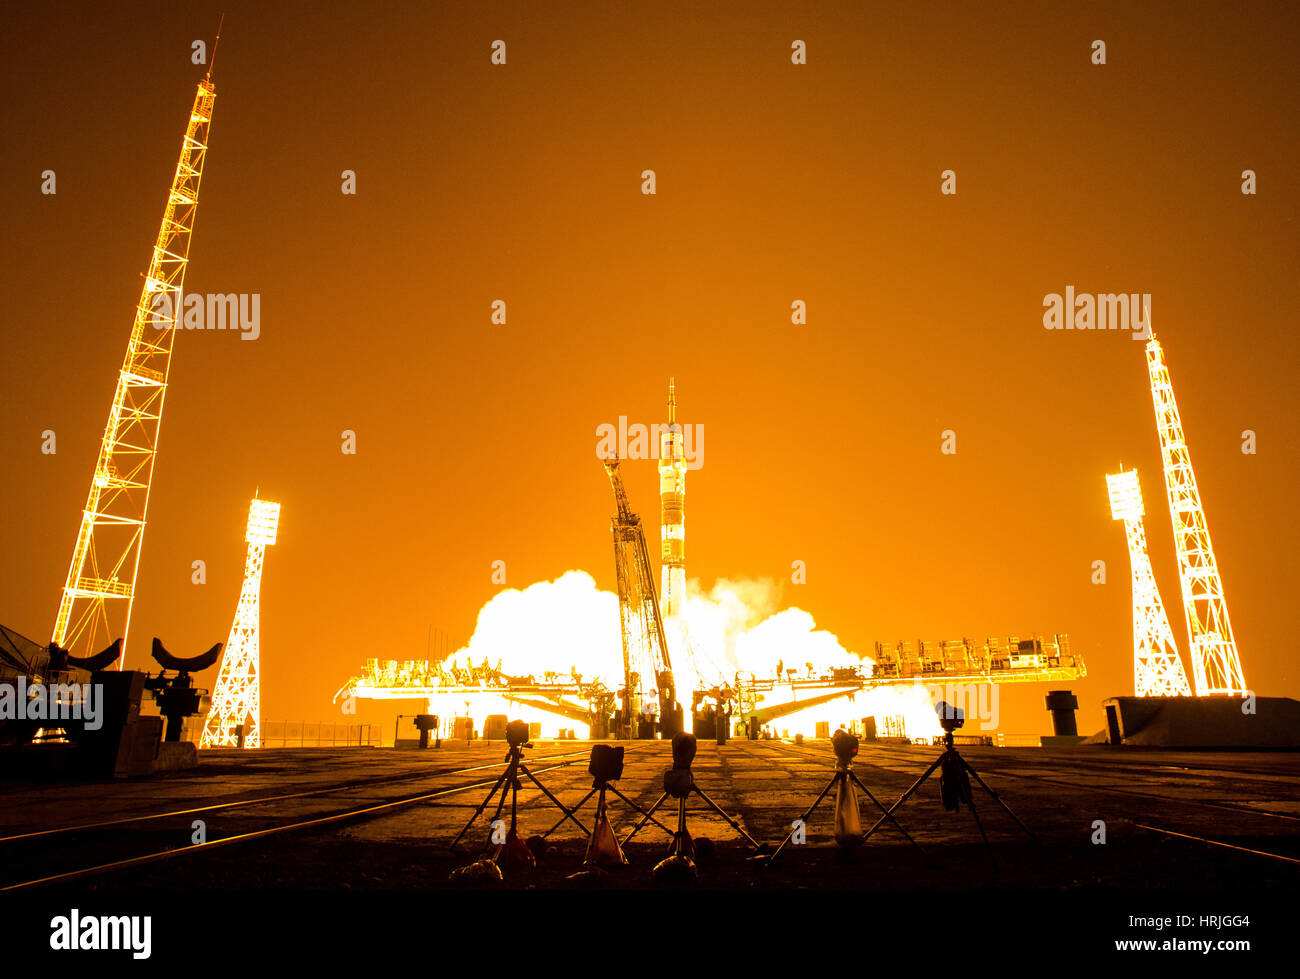 Expedition 40 Launch - Stock Image